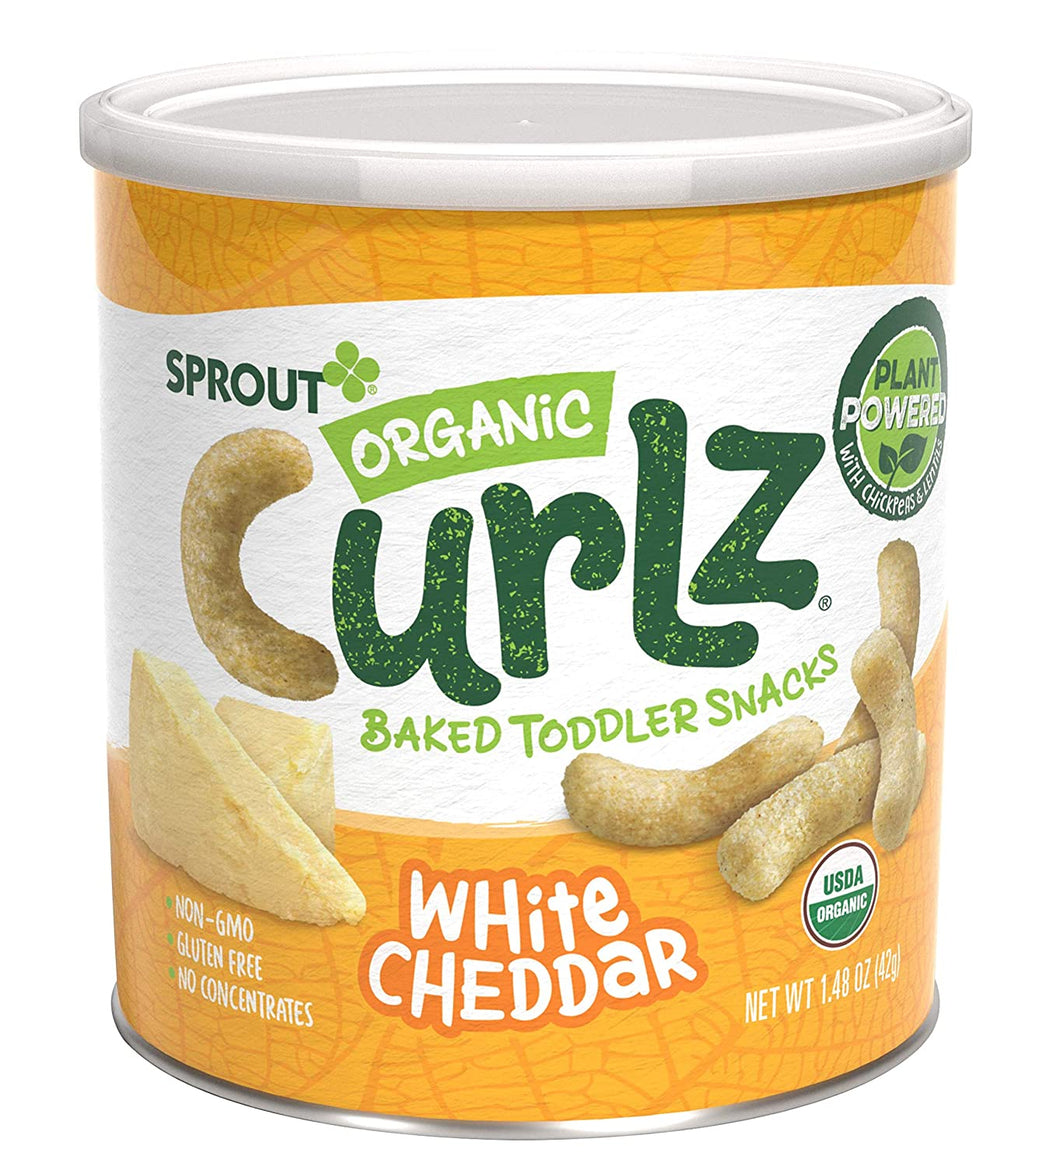 Sprout Curlz - White Cheddar